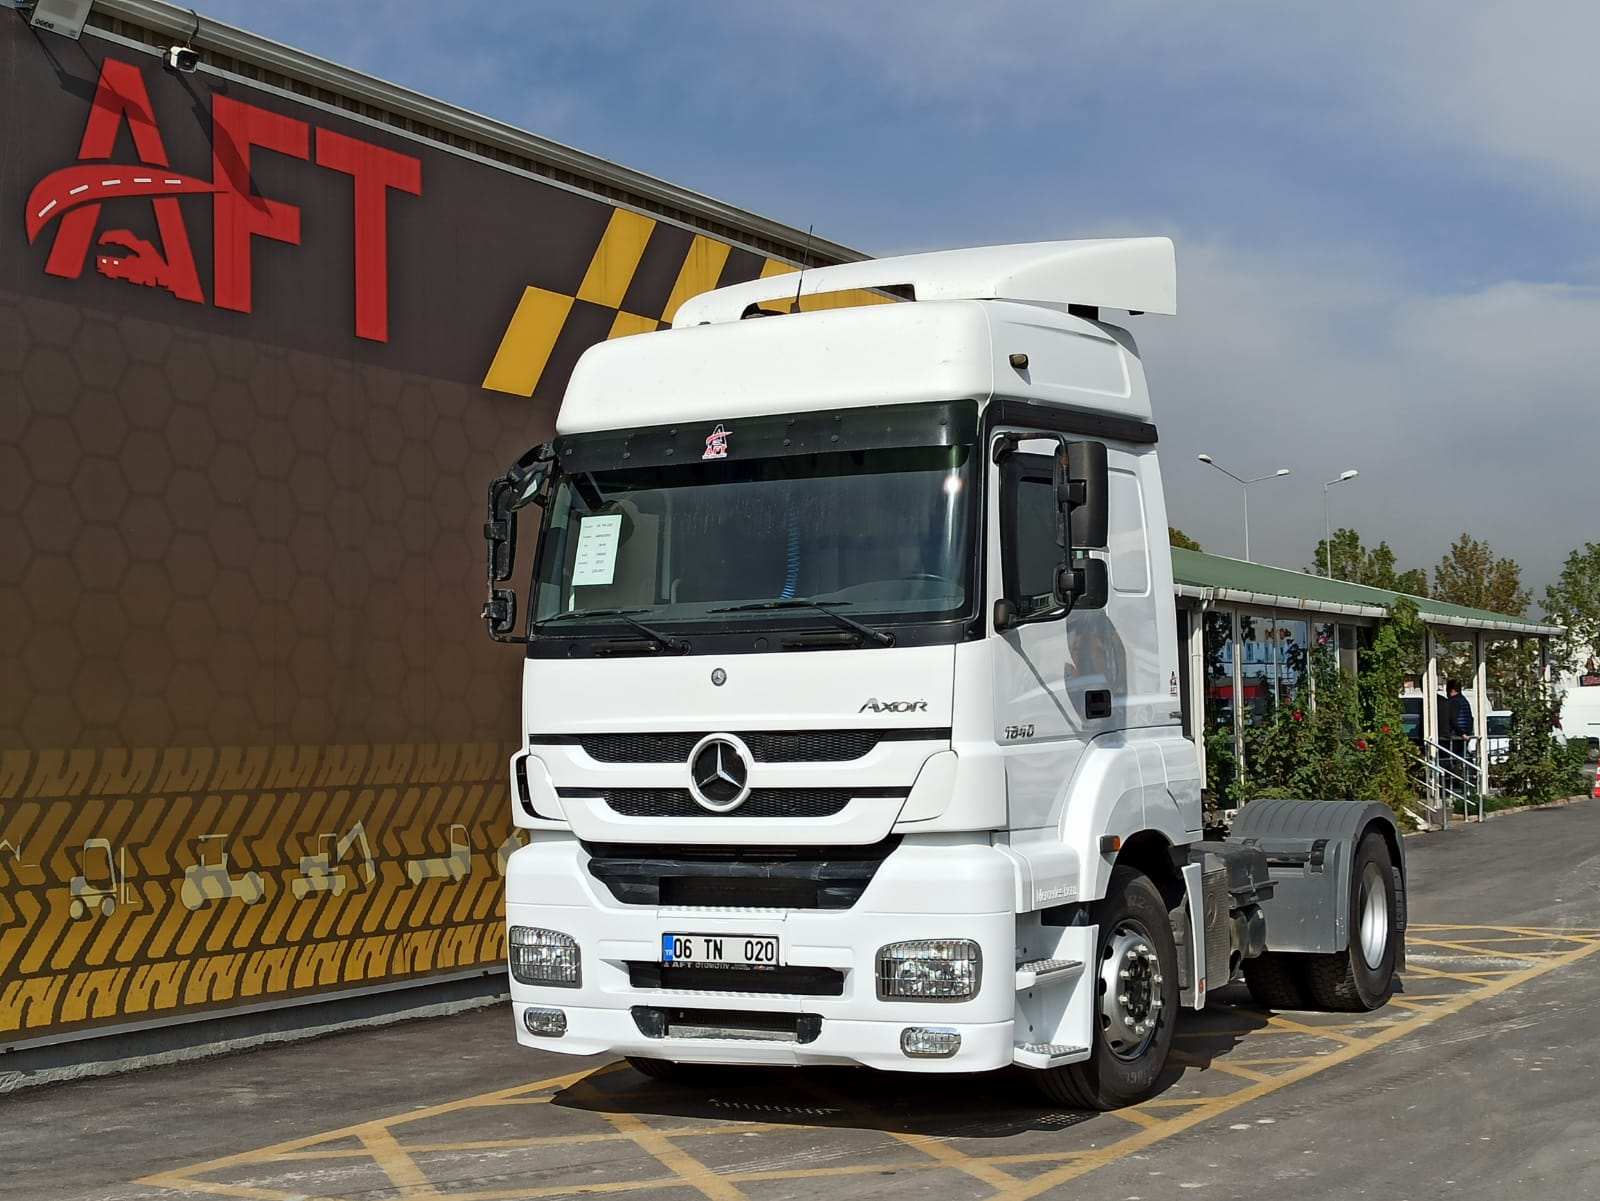 2015 MODEL MERCEDES AXOR 1840 E5 AUTO RETARDER